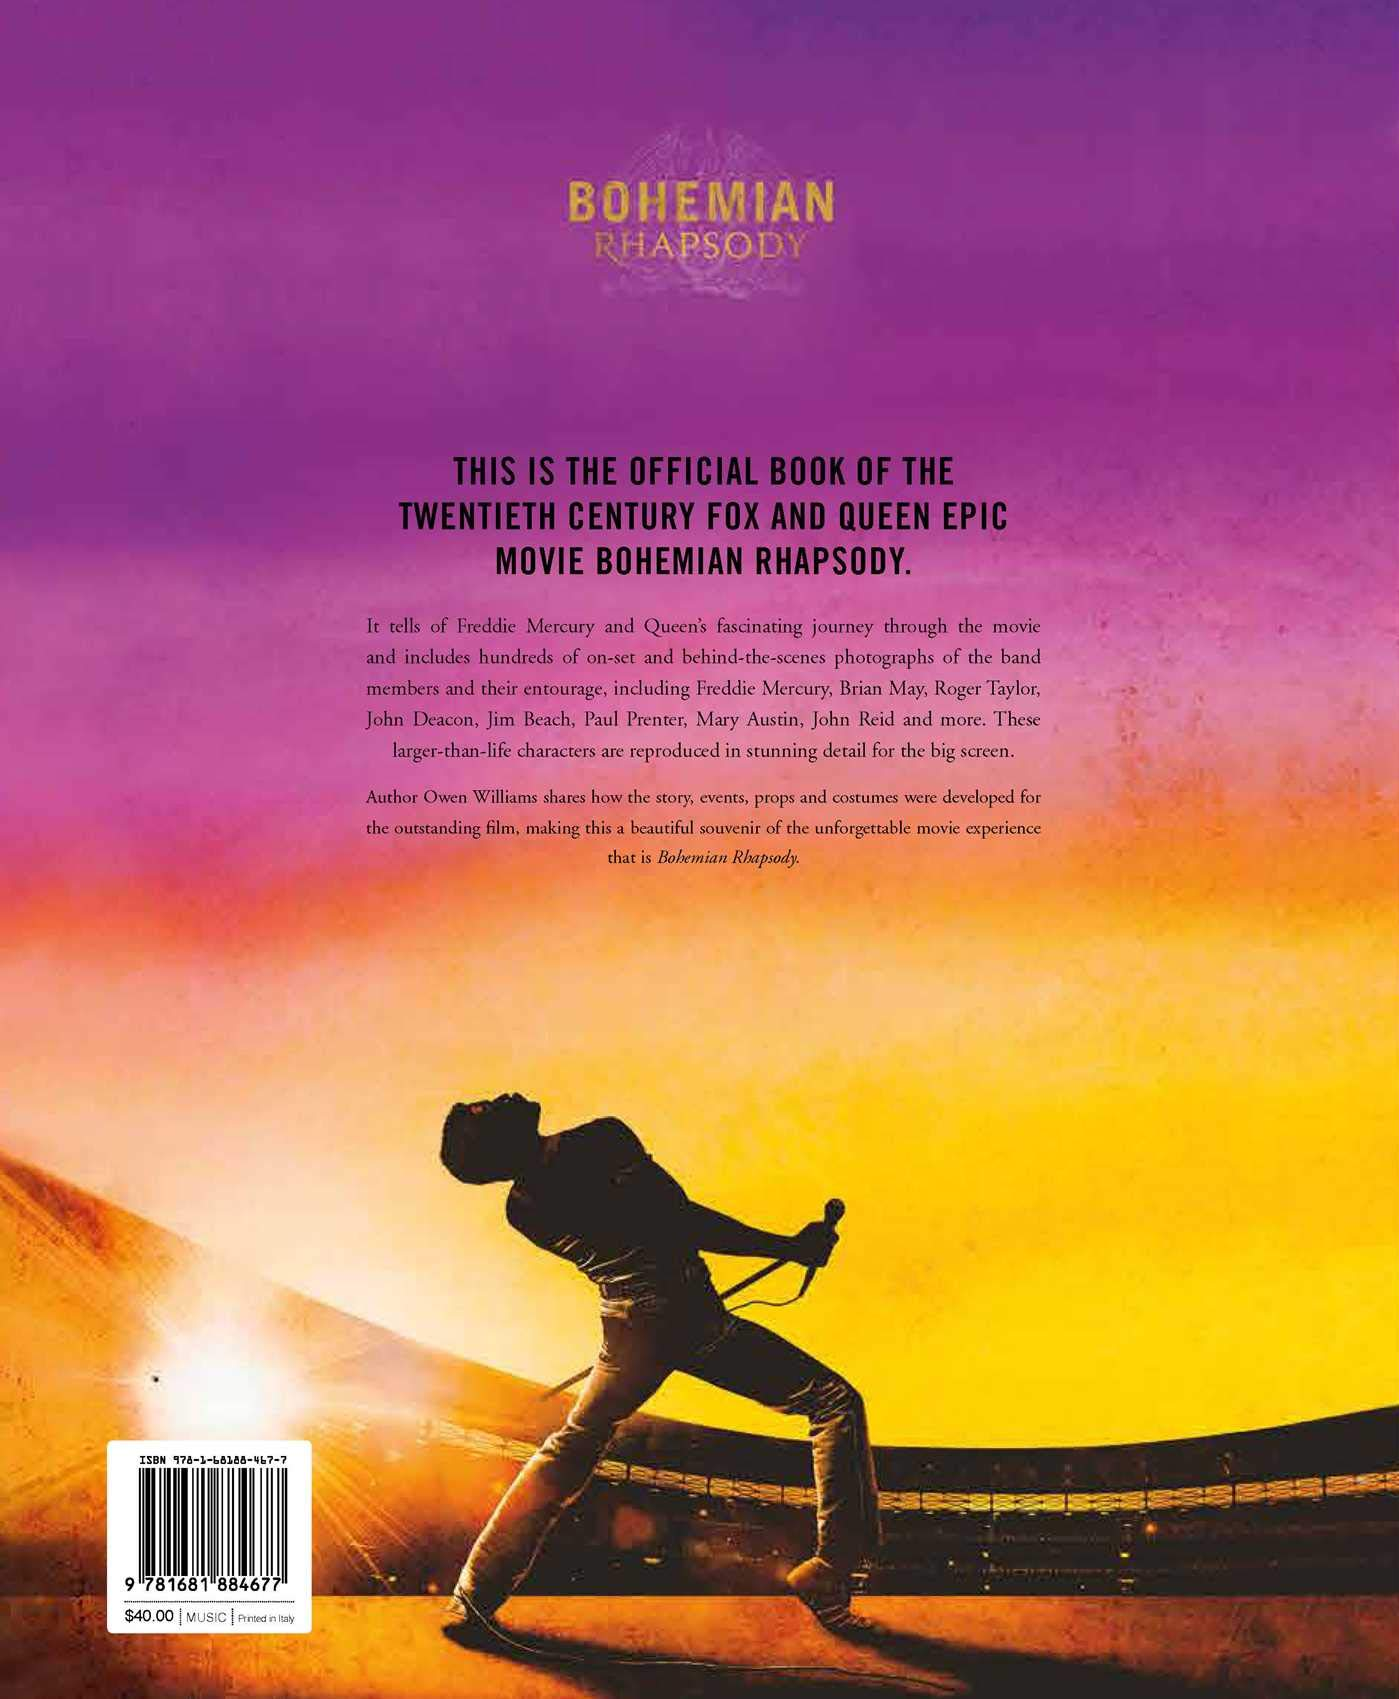 amazon bohemian rhapsody the official book of the movie owen